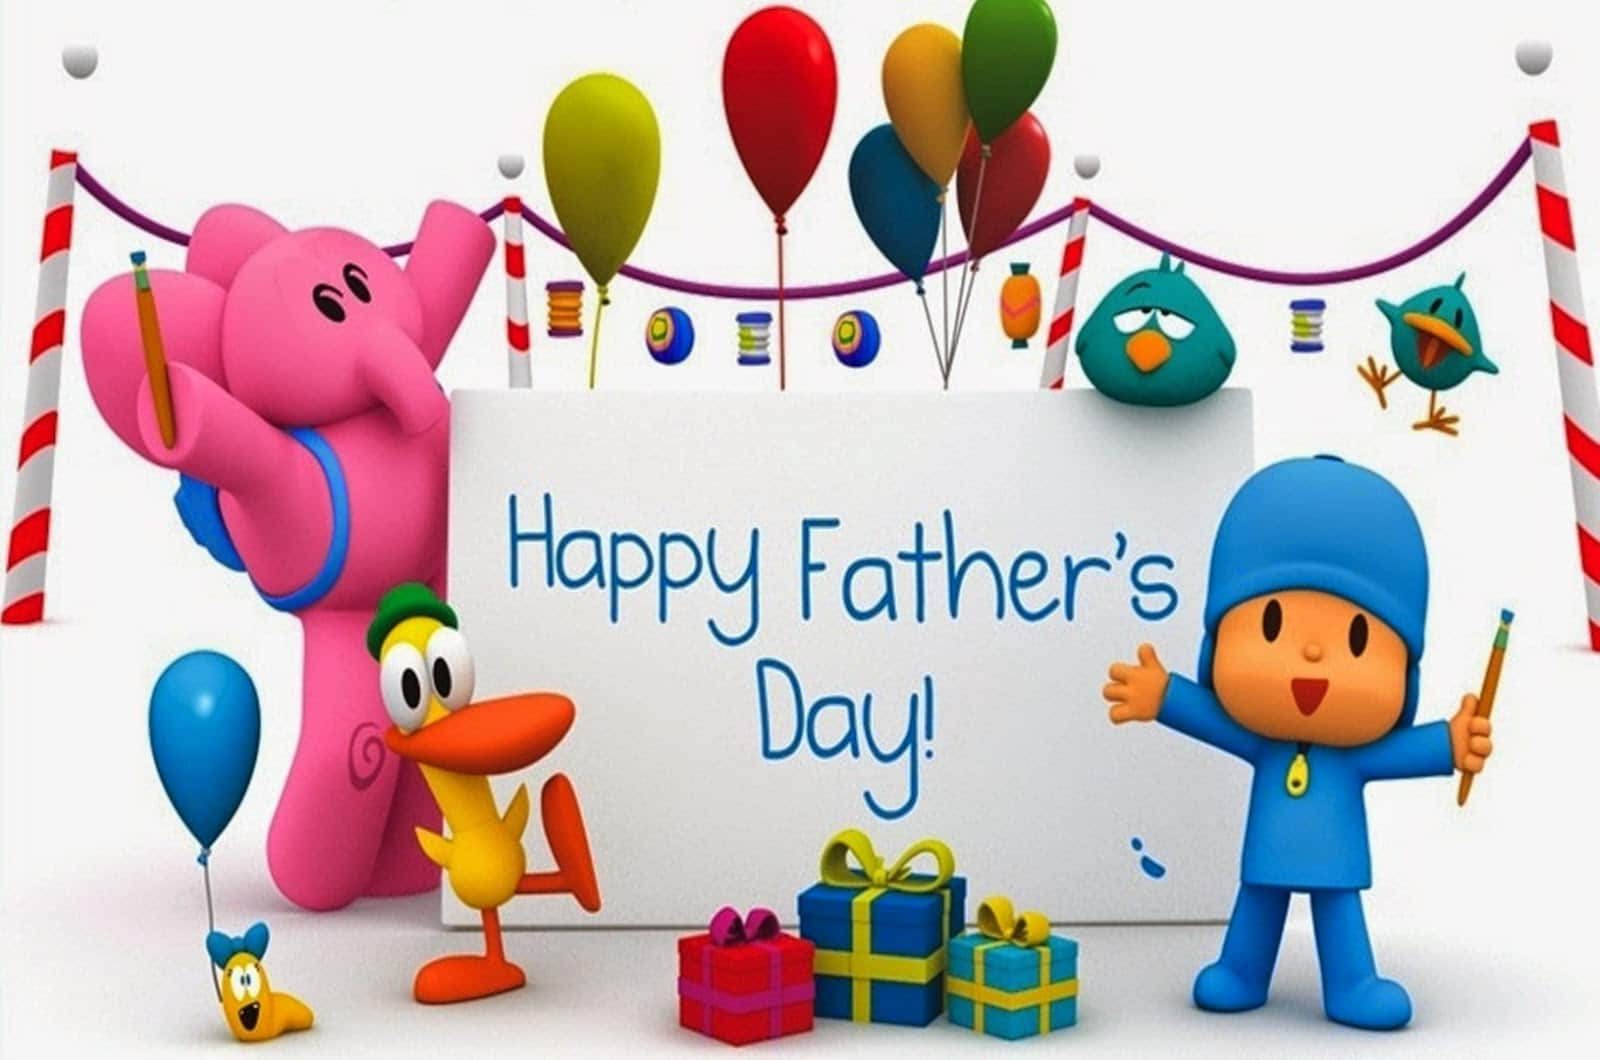 Fathers Day Images And Quotes